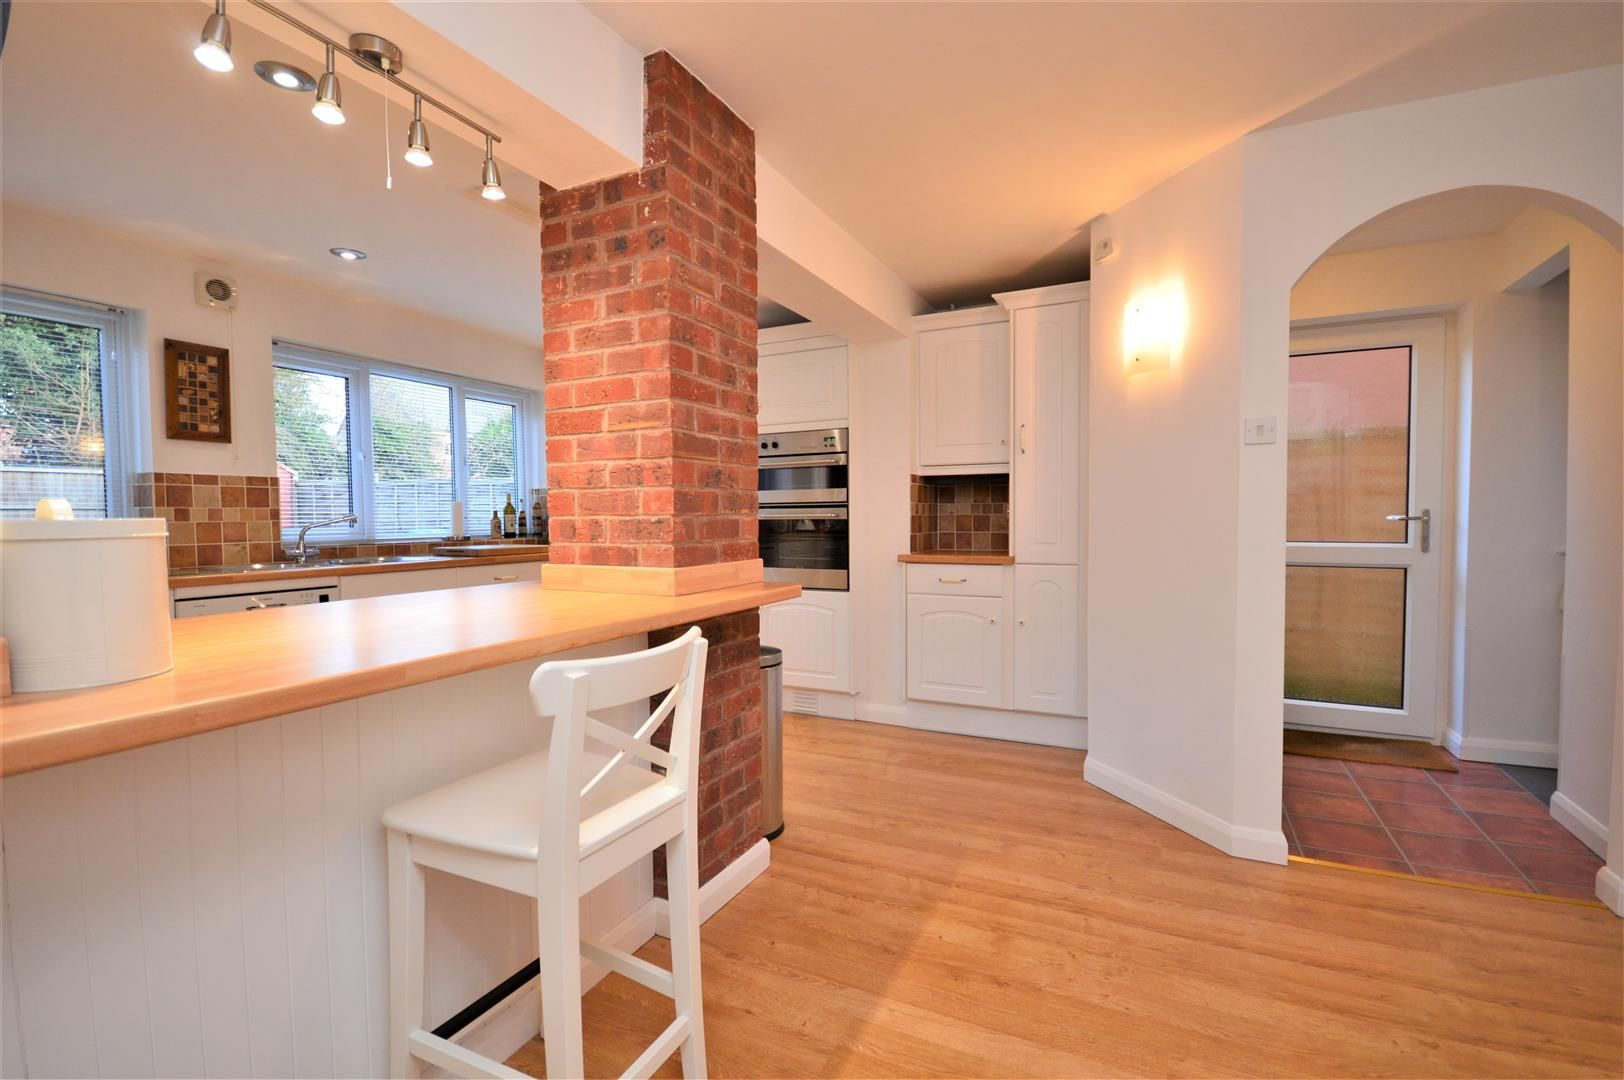 4 bed detached for sale in Hereford  - Property Image 6